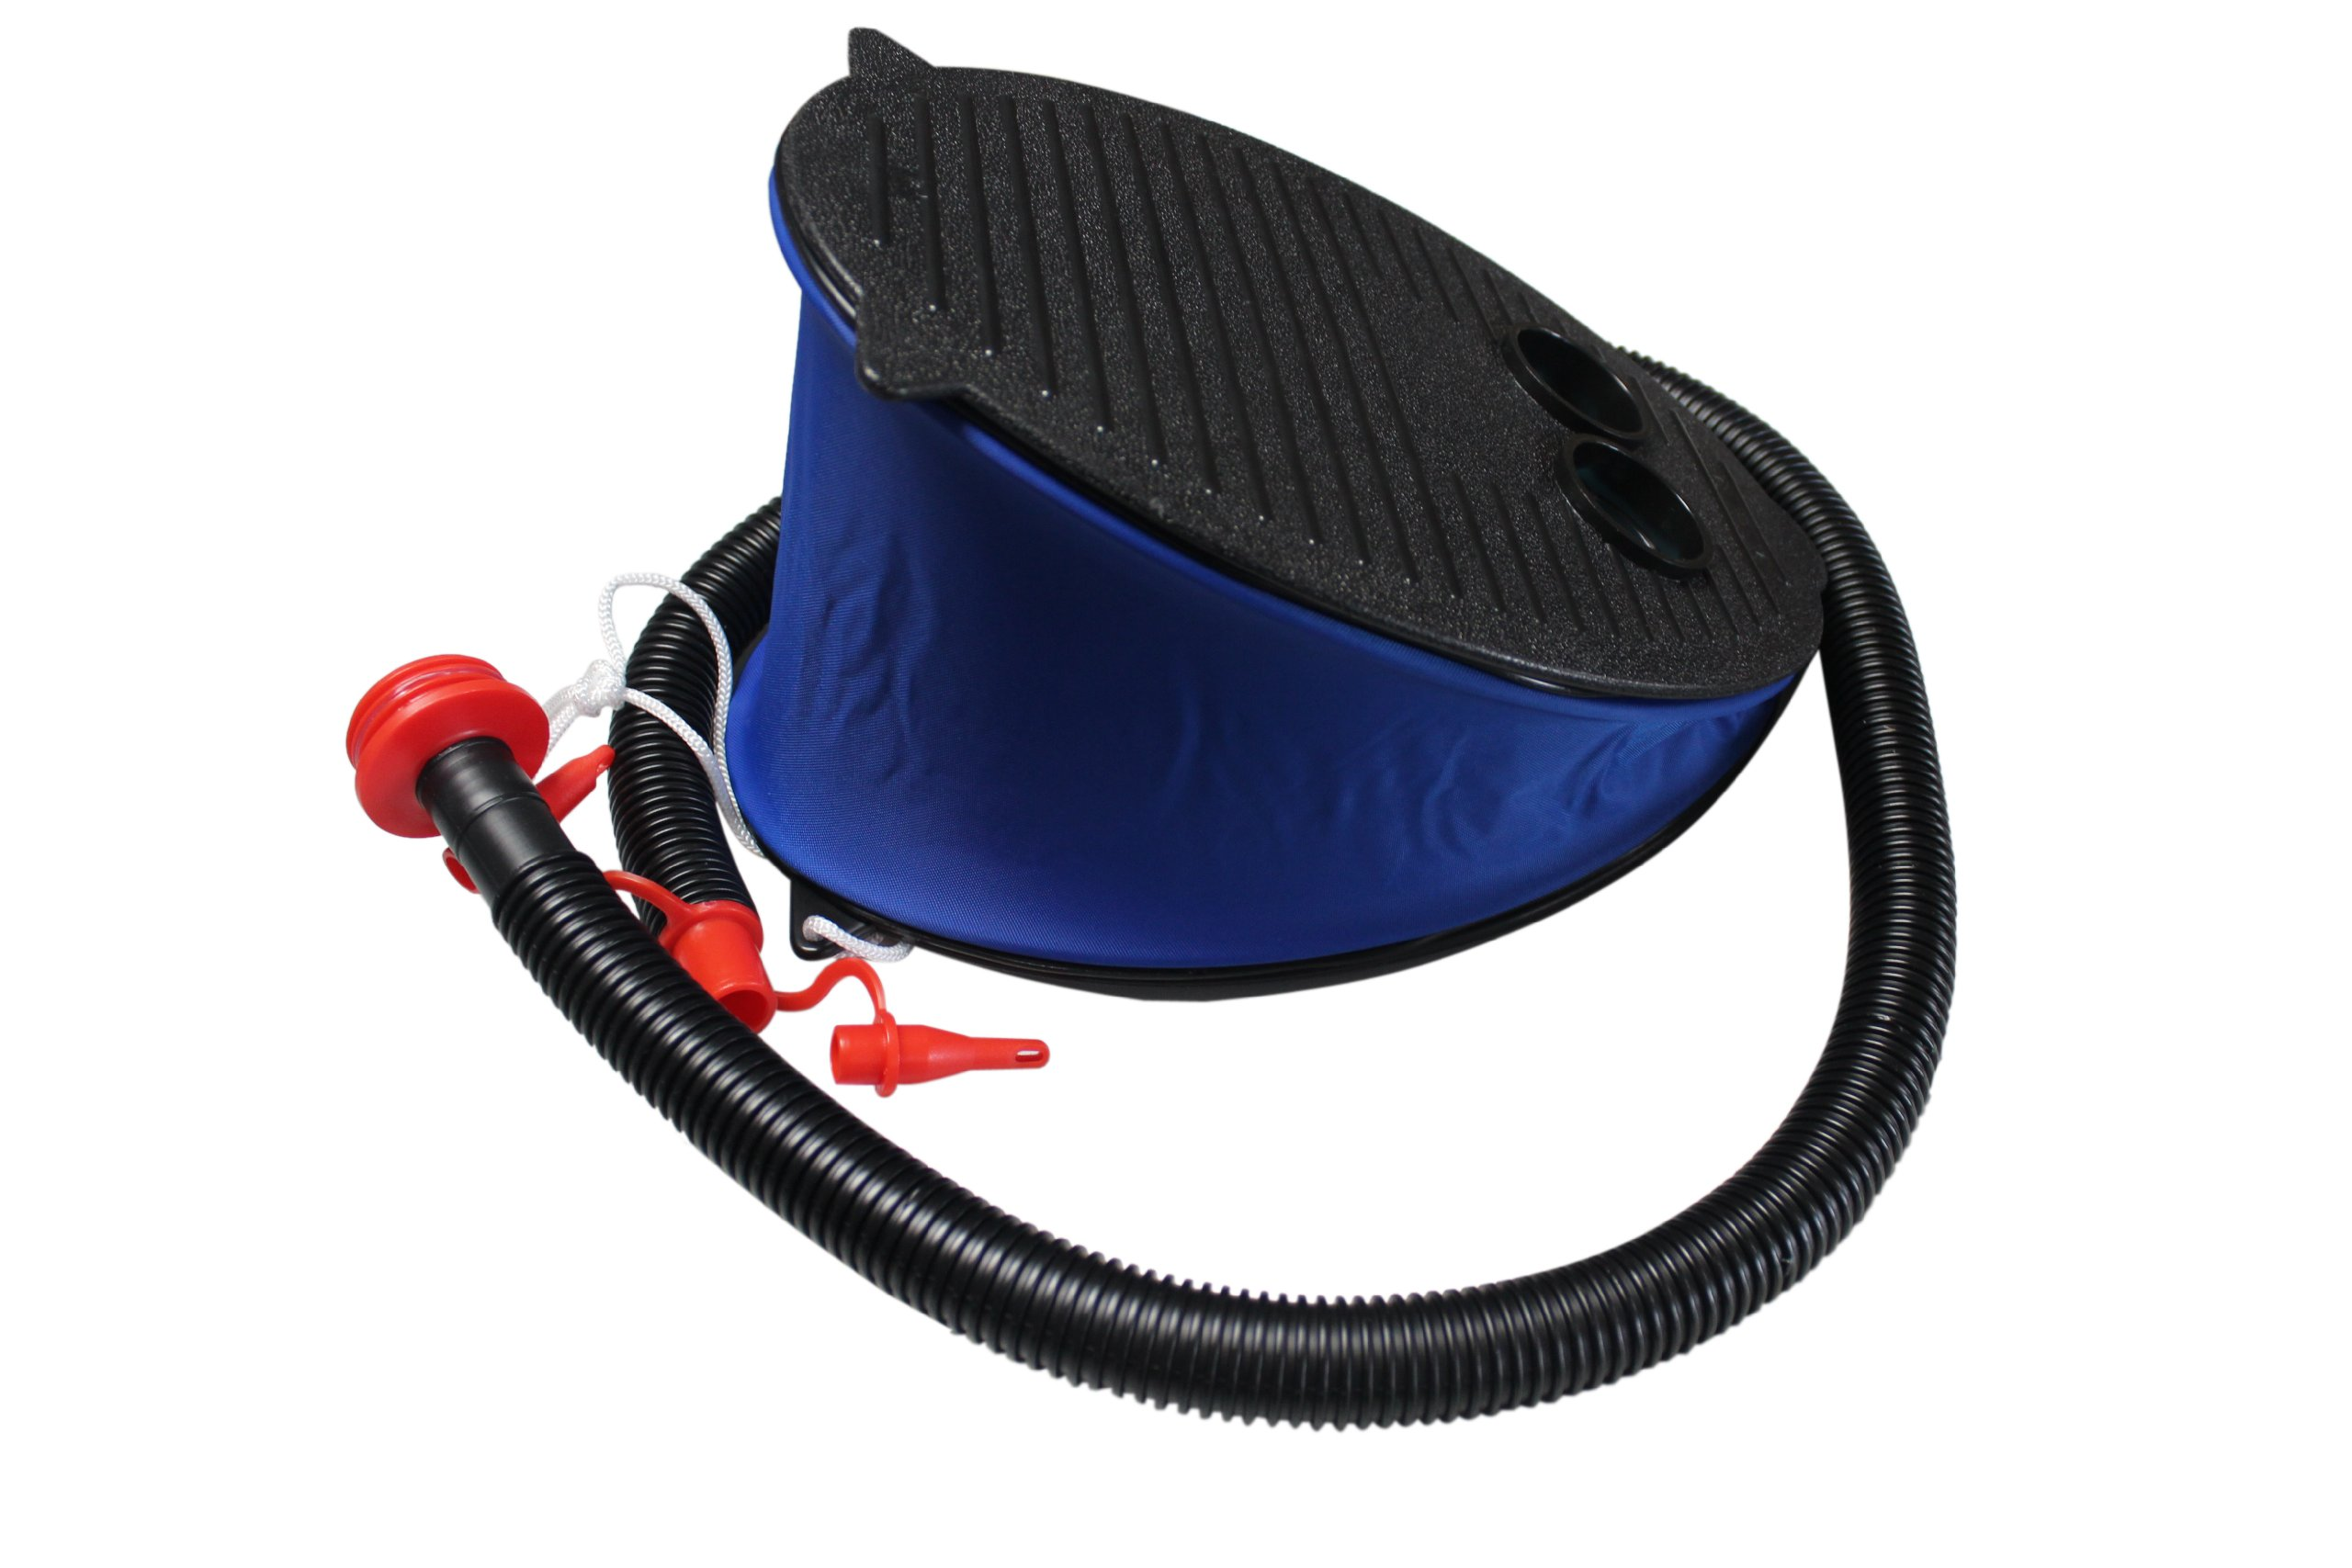 Intex    Outdoor Foot Pump available in Multi - Coloured - Size 28 cm 4